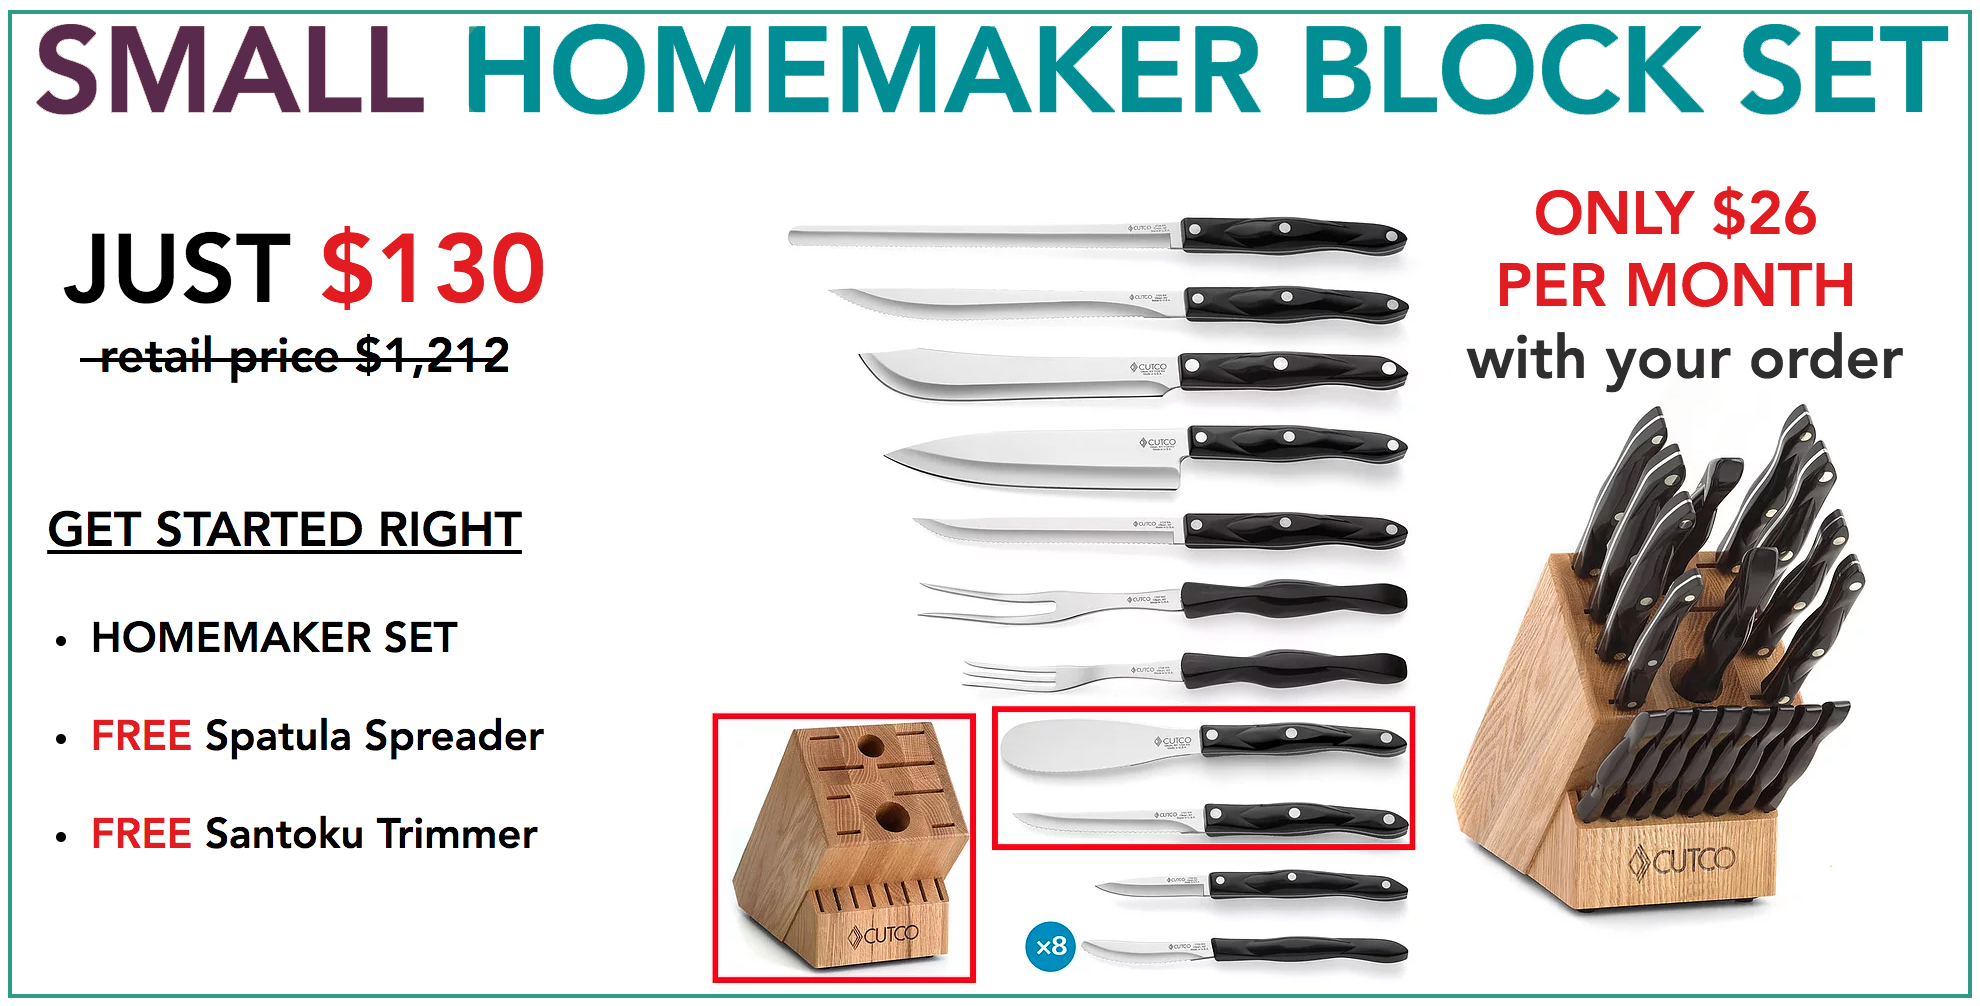 Homemaker Block Set